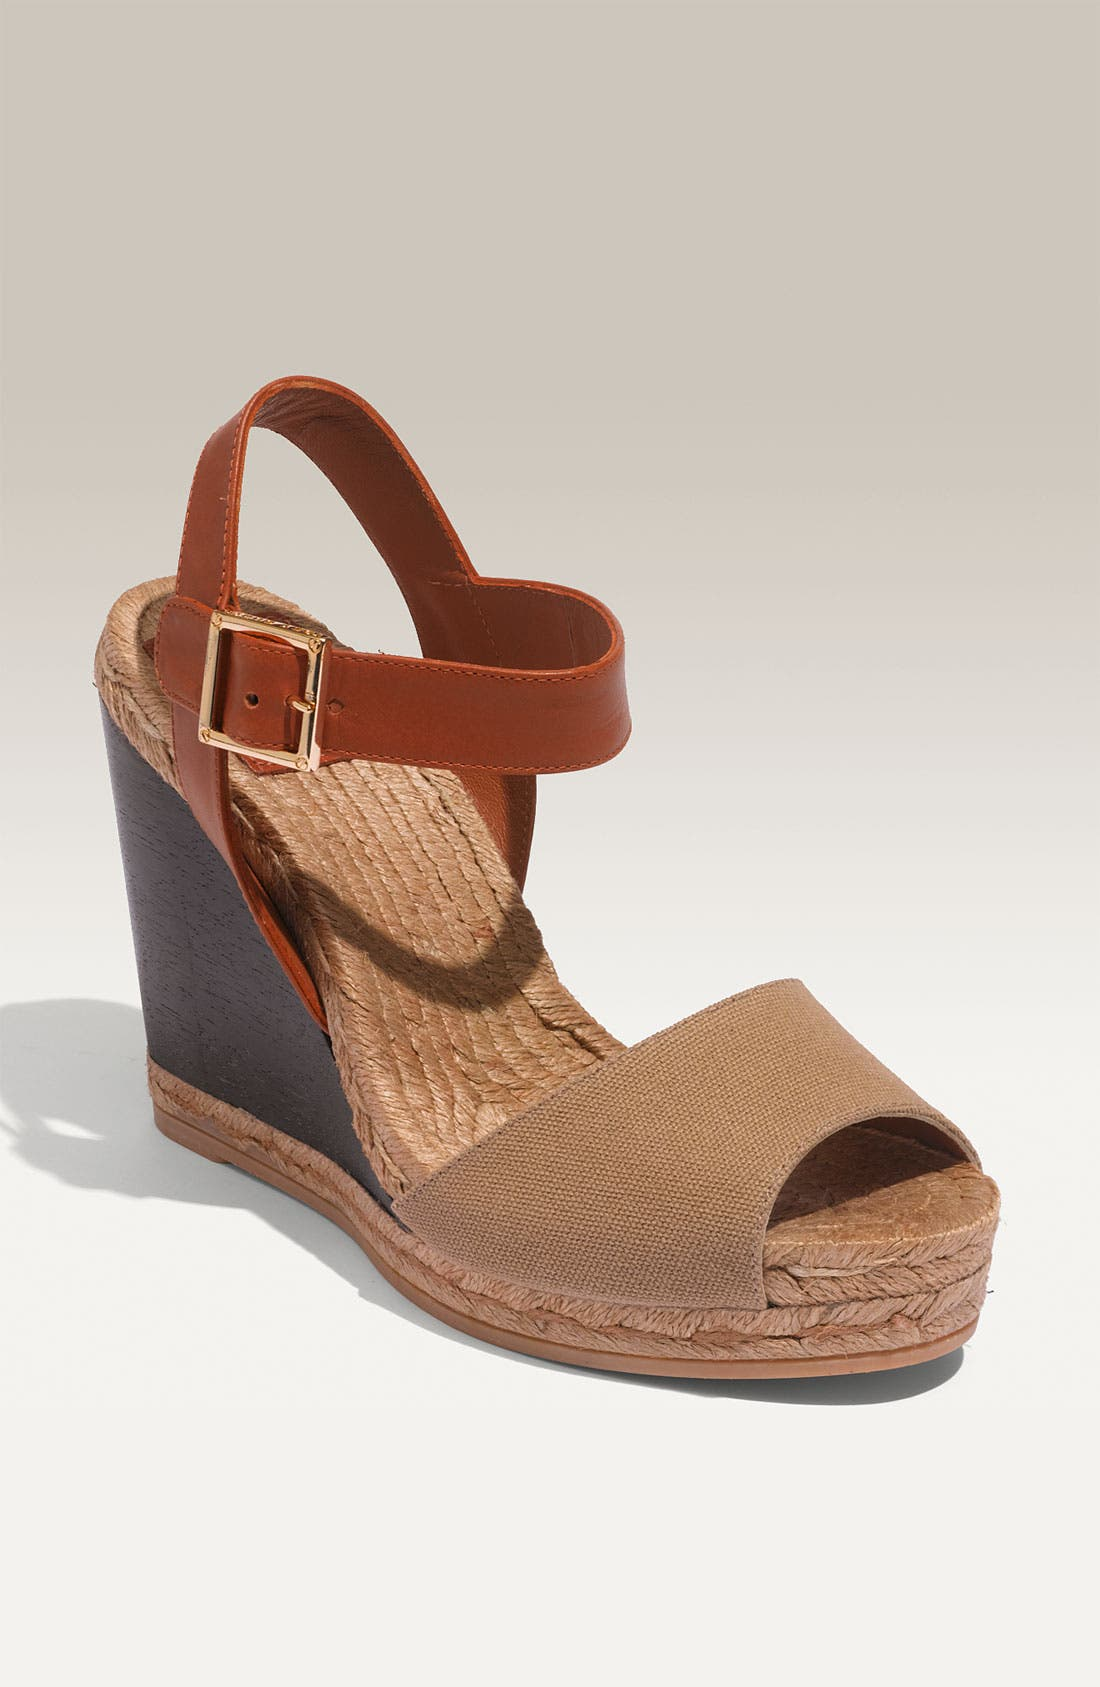 Main Image - Tory Burch Wood Wedge Espadrille